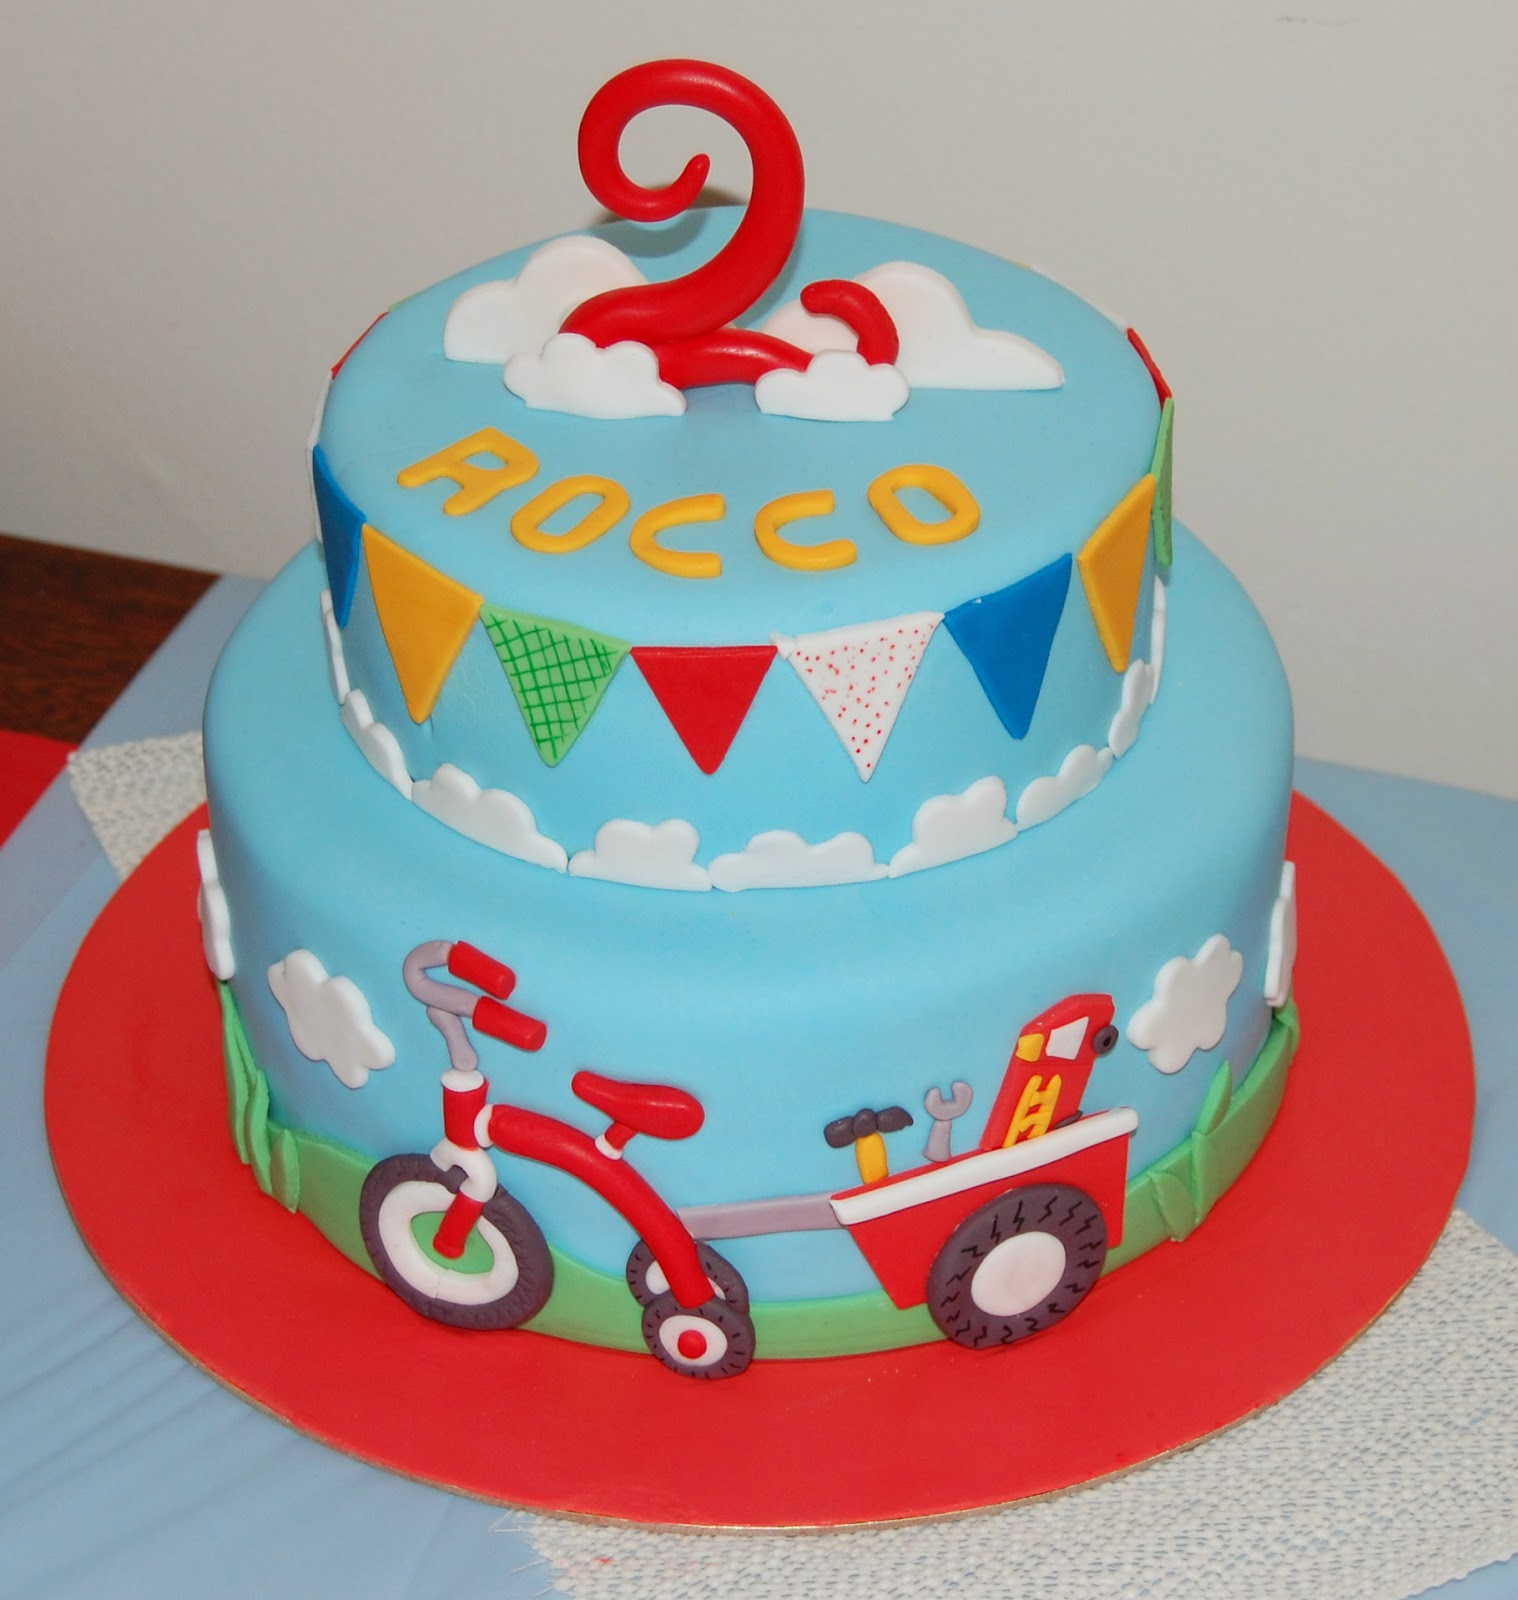 Butter Hearts Sugar: Tricycle Birthday Cake